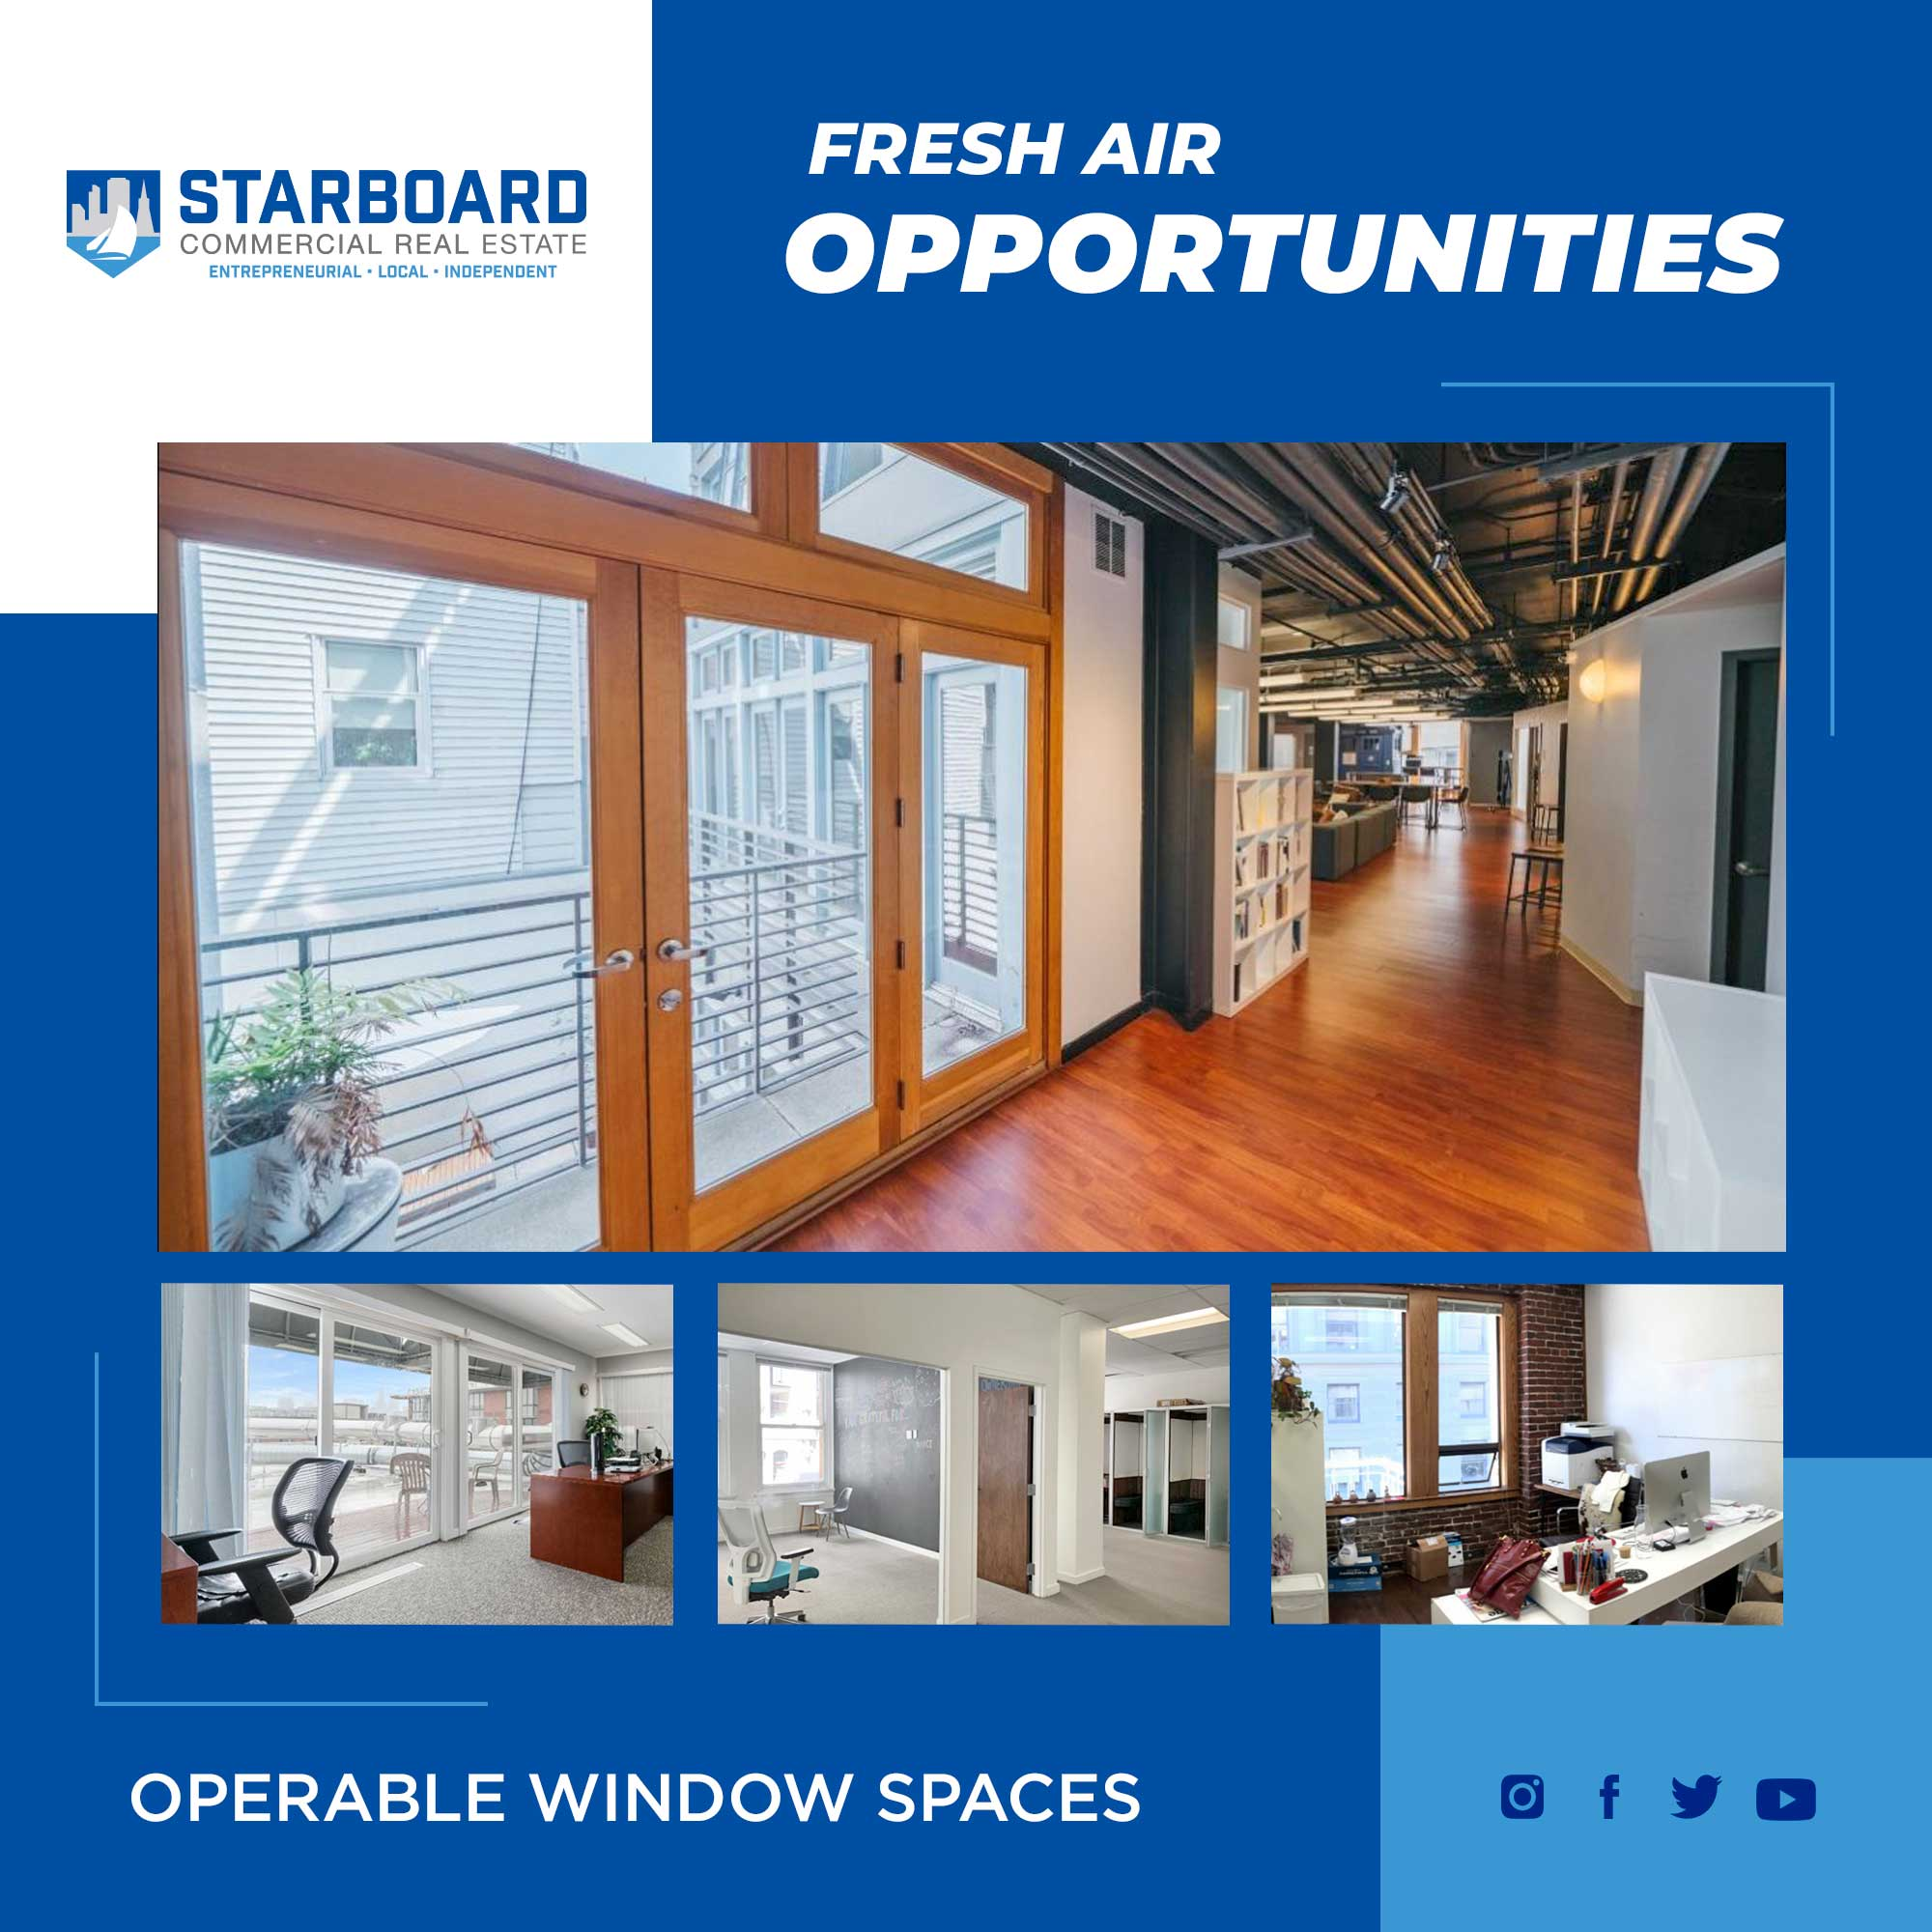 Starboard Commercial Real Estate